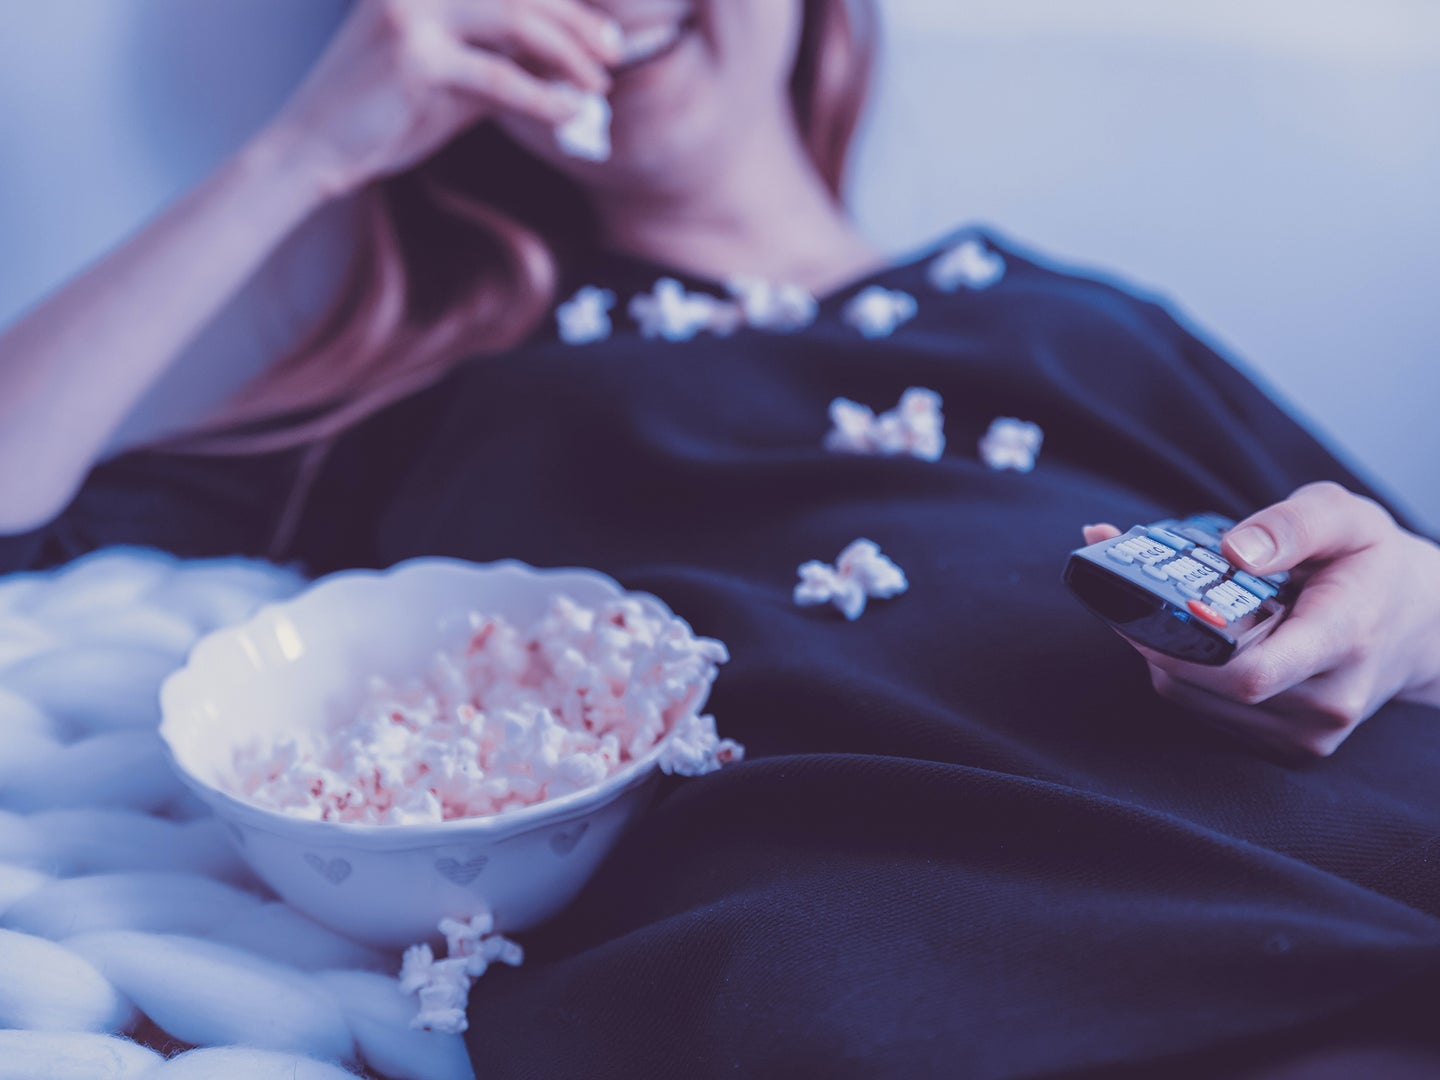 Person watching TV and eating popcorn in bed